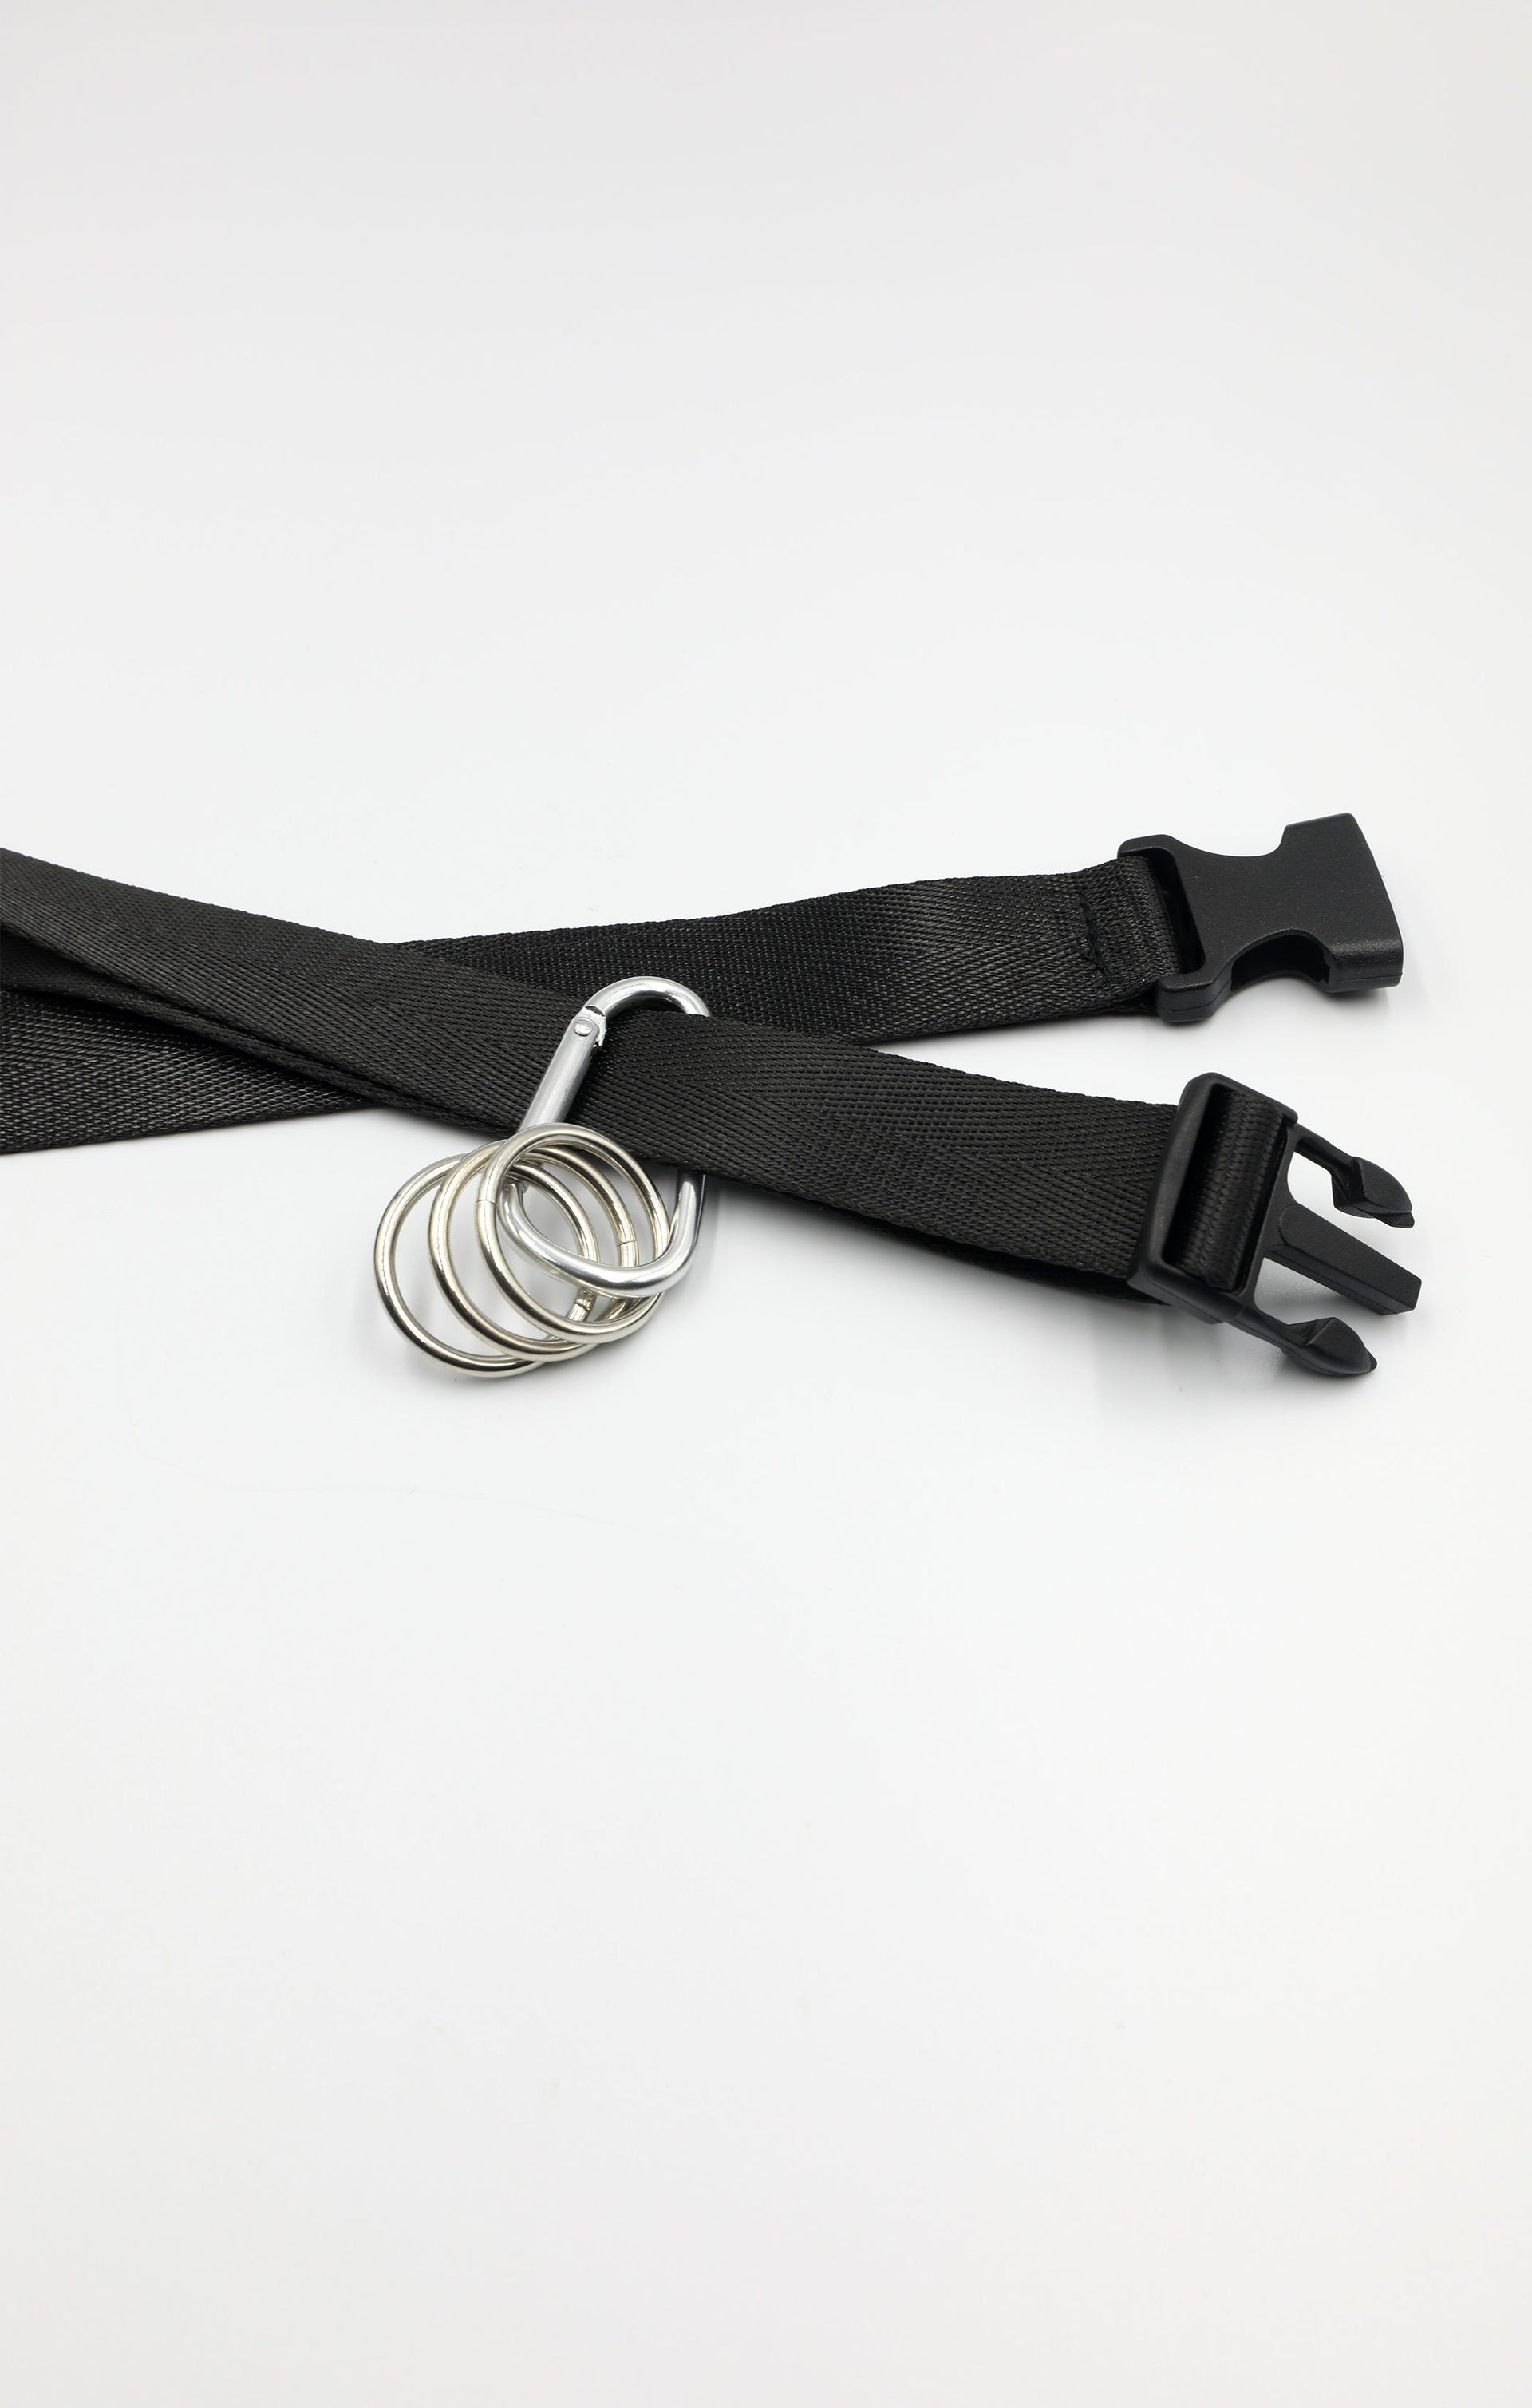 Black Utility Carabiner Seatbelt Buckle Belt - Penny